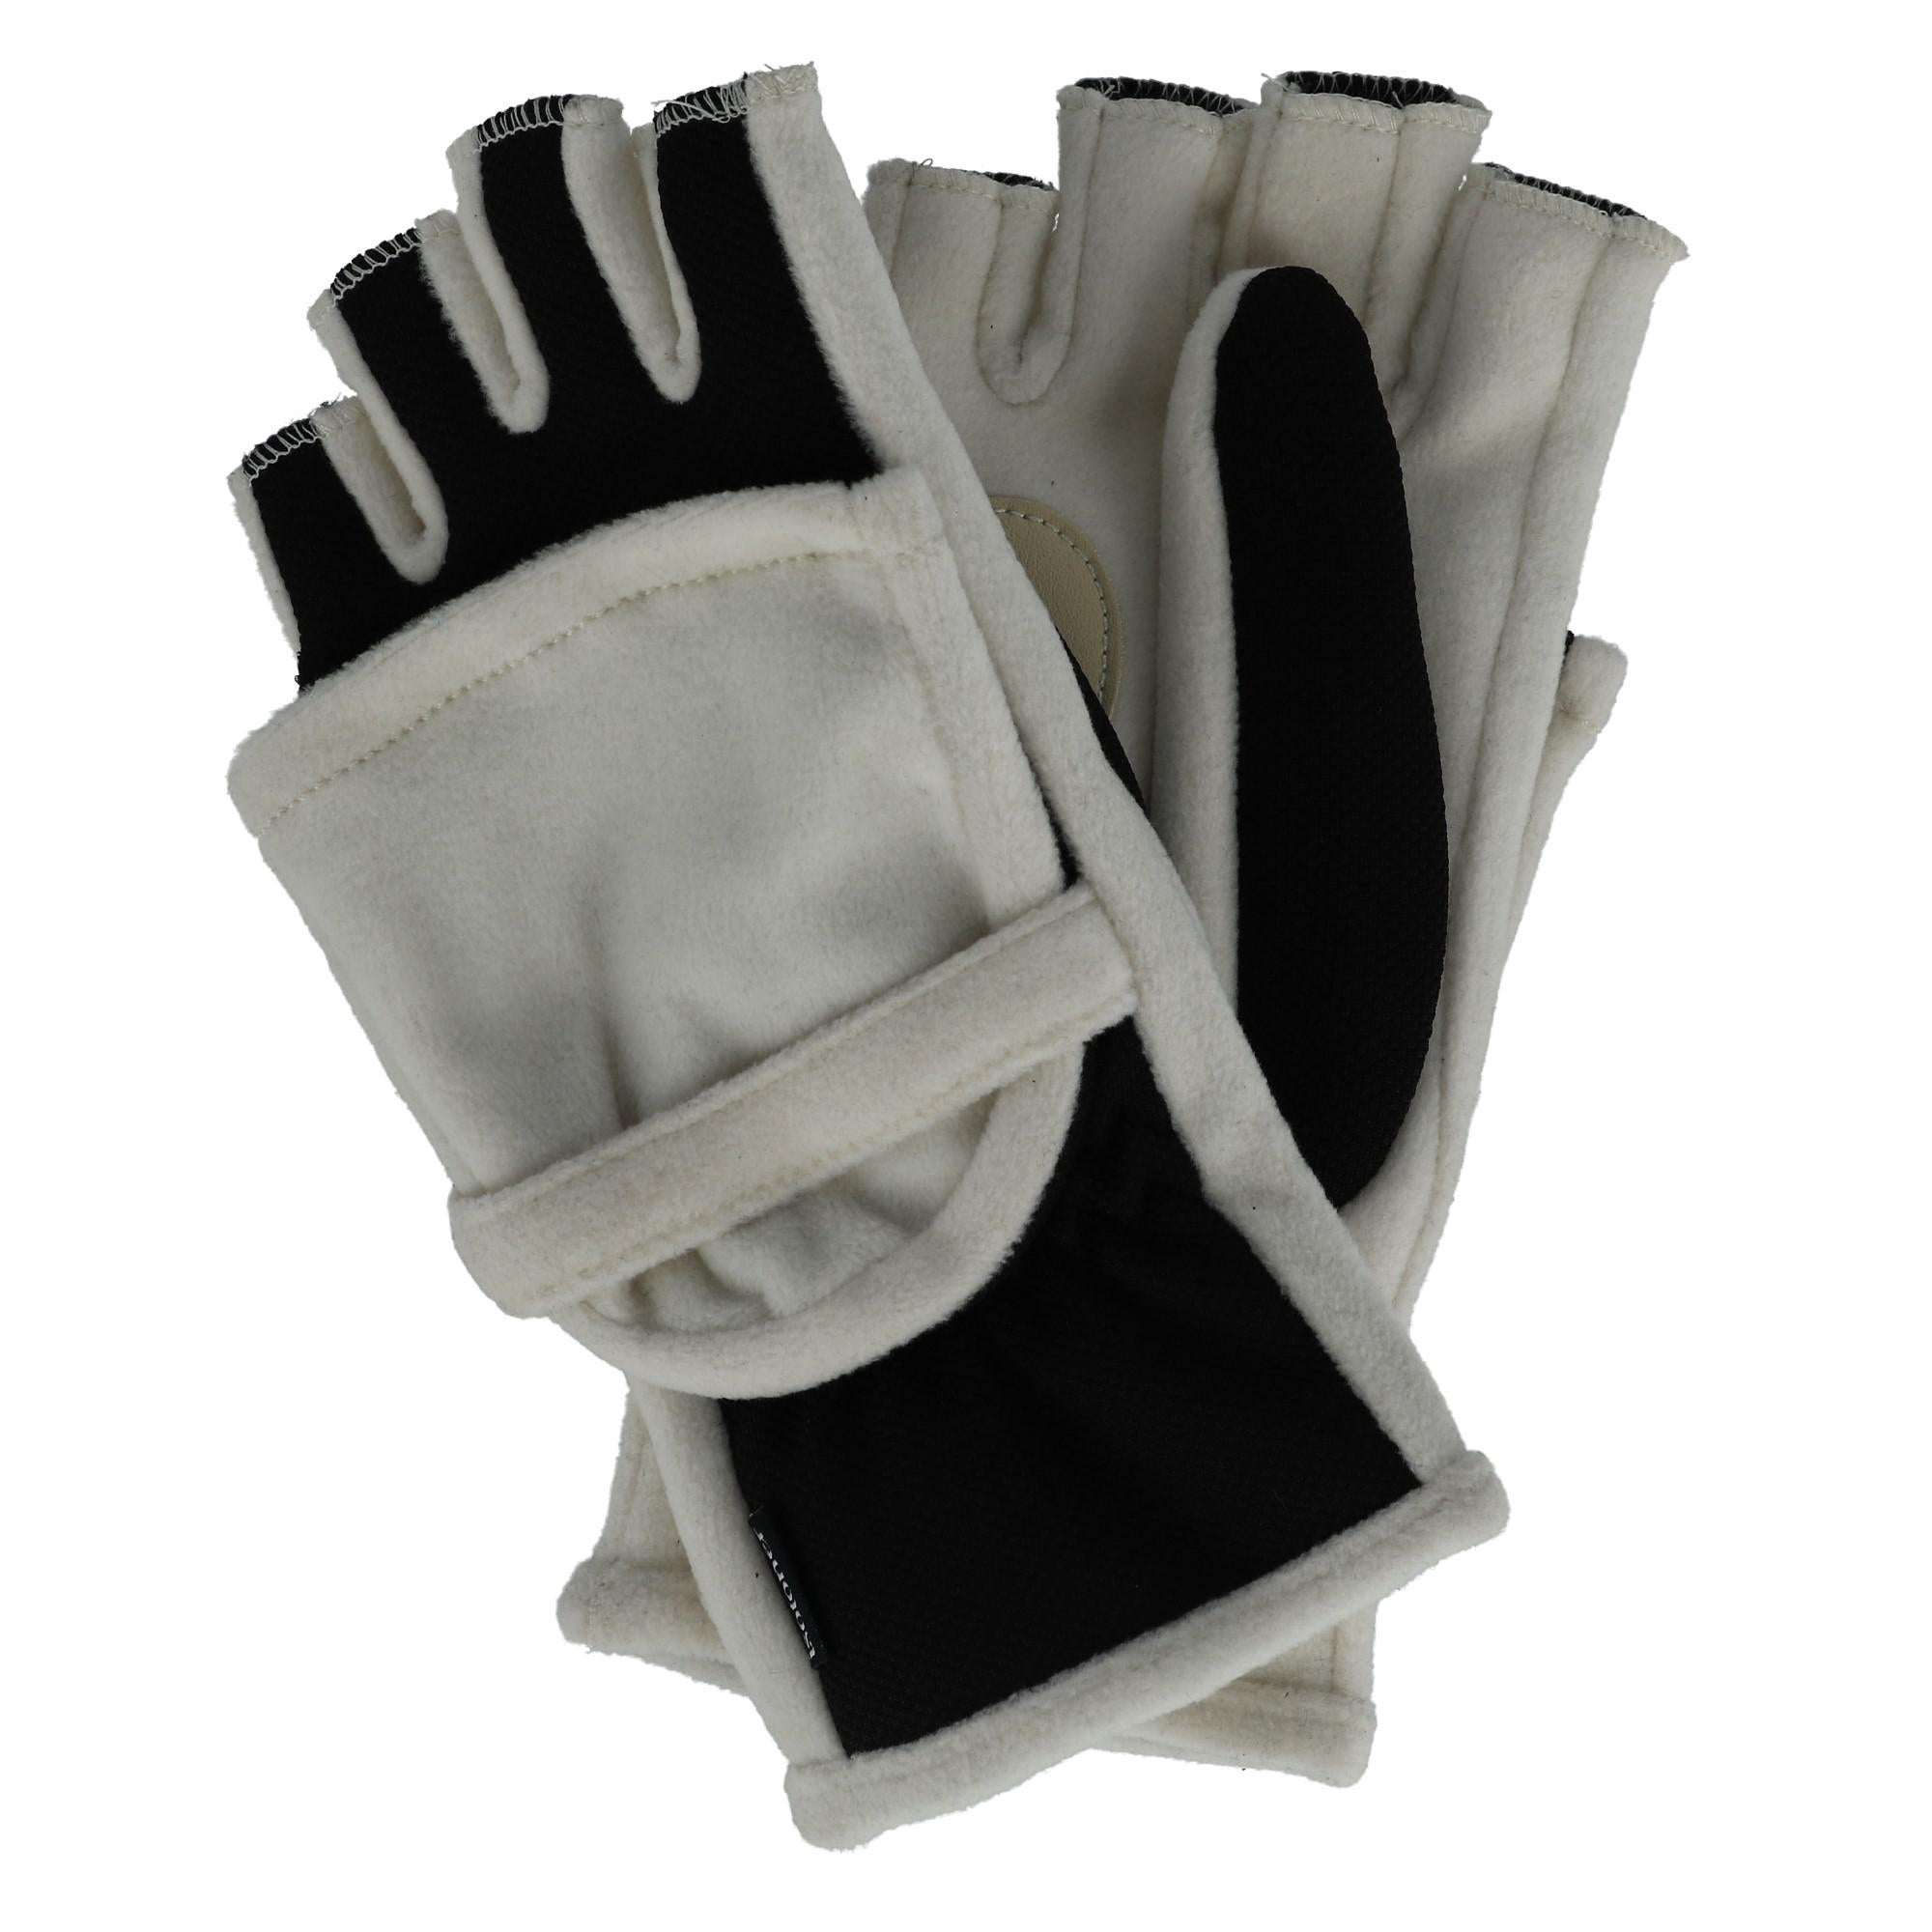 44e664b60 Buy Isotoner Women's Gloves Online at Overstock | Our Best Gloves Deals